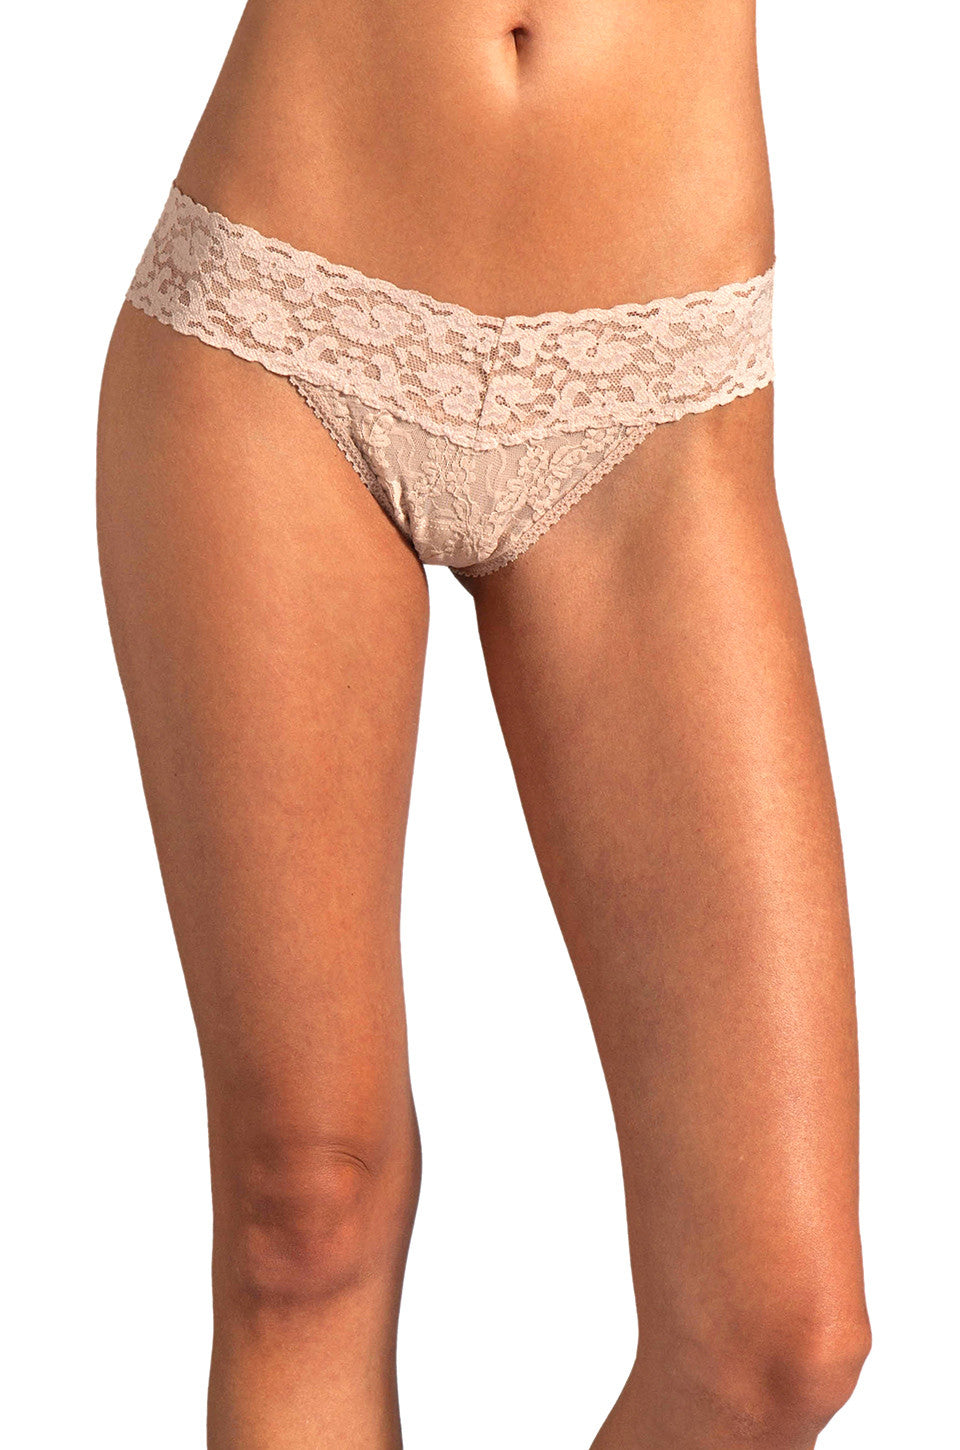 Only Hearts Low Rise Stretch Lace Must Have Thong - Knickers & Pearls Boutique - 6